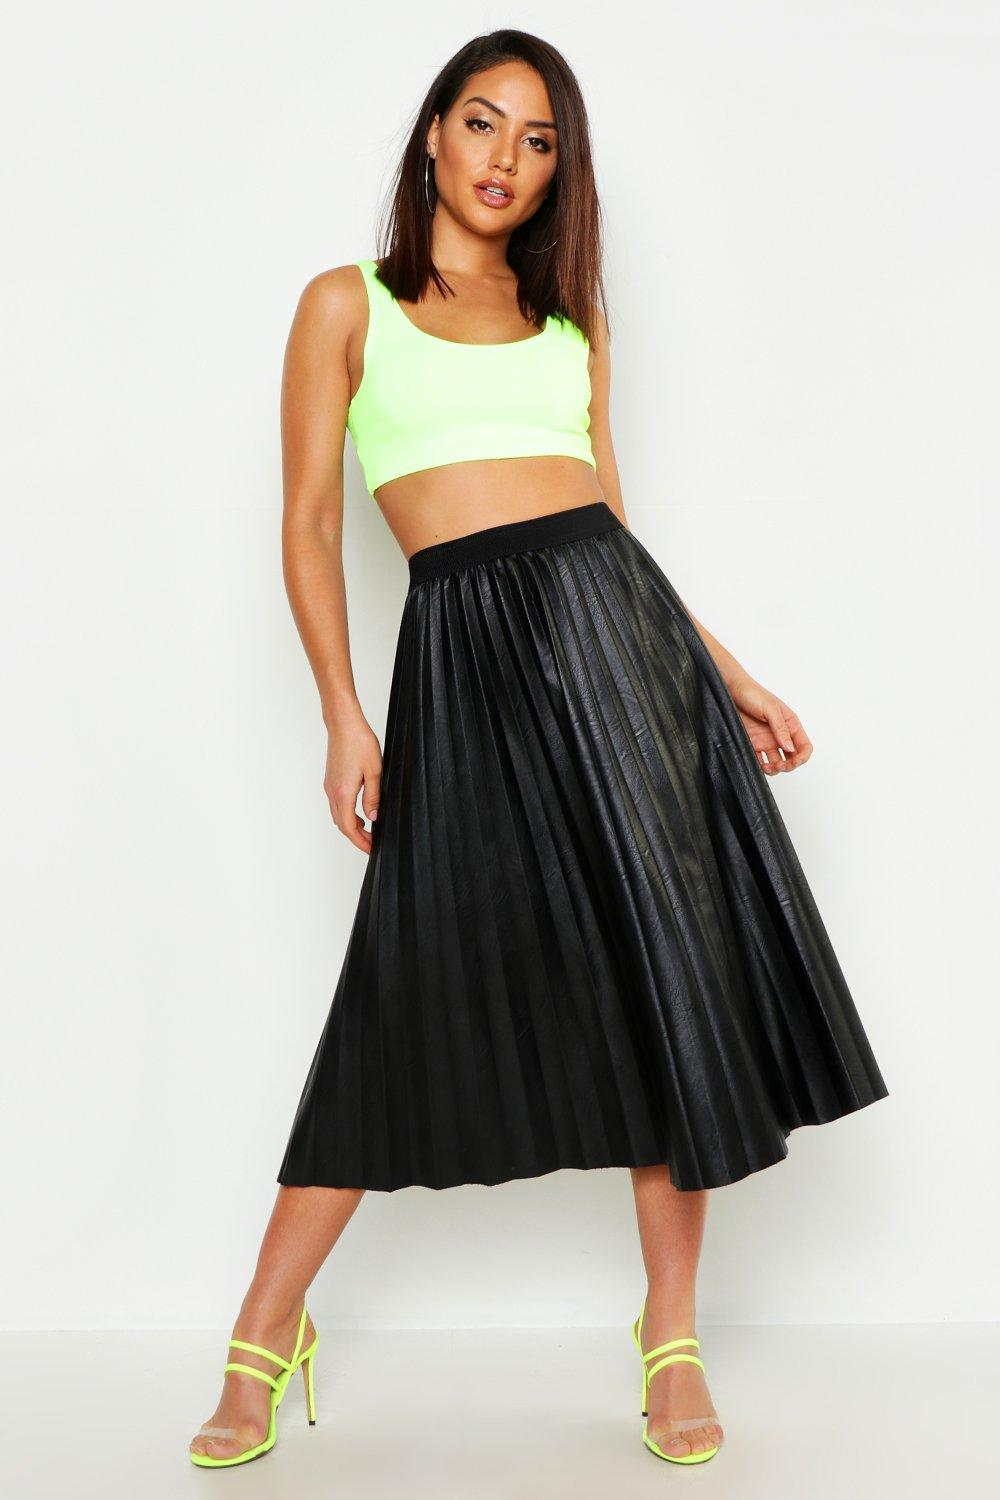 2cca6c1e166 Womens Black Faux Leather Pleated Skirt. Hover to zoom